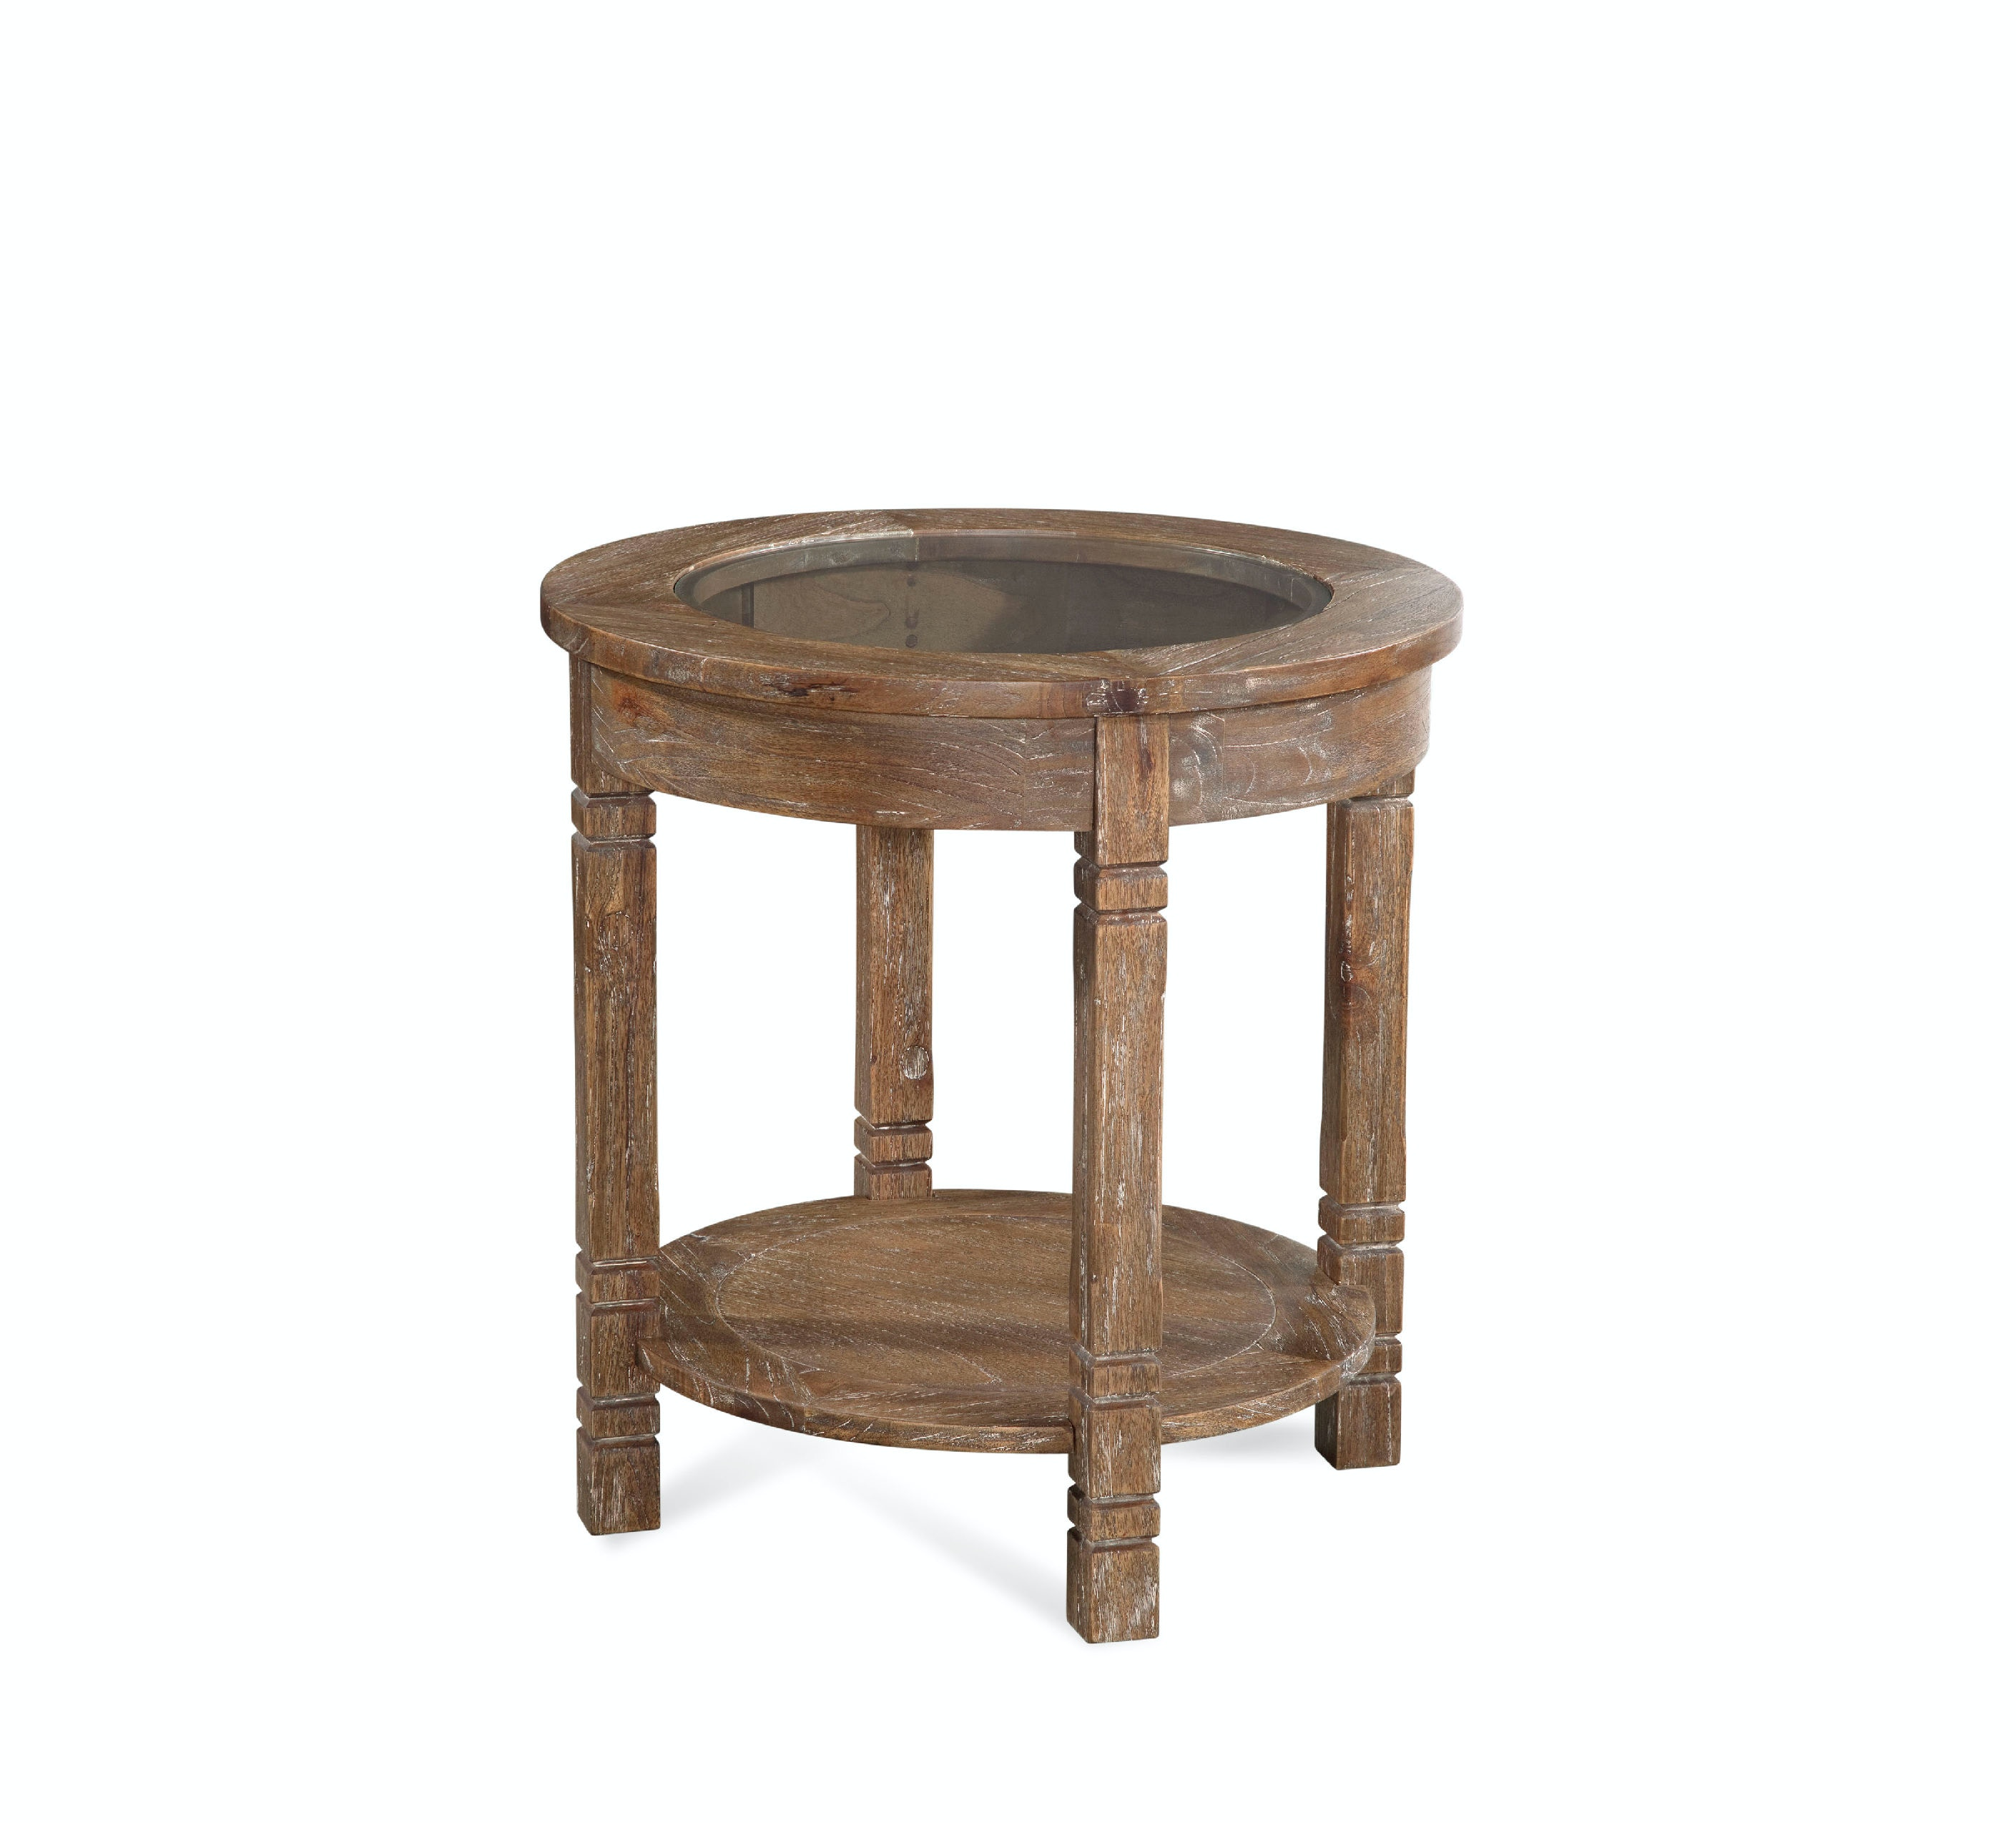 Farmhouse Round End Table 835-022